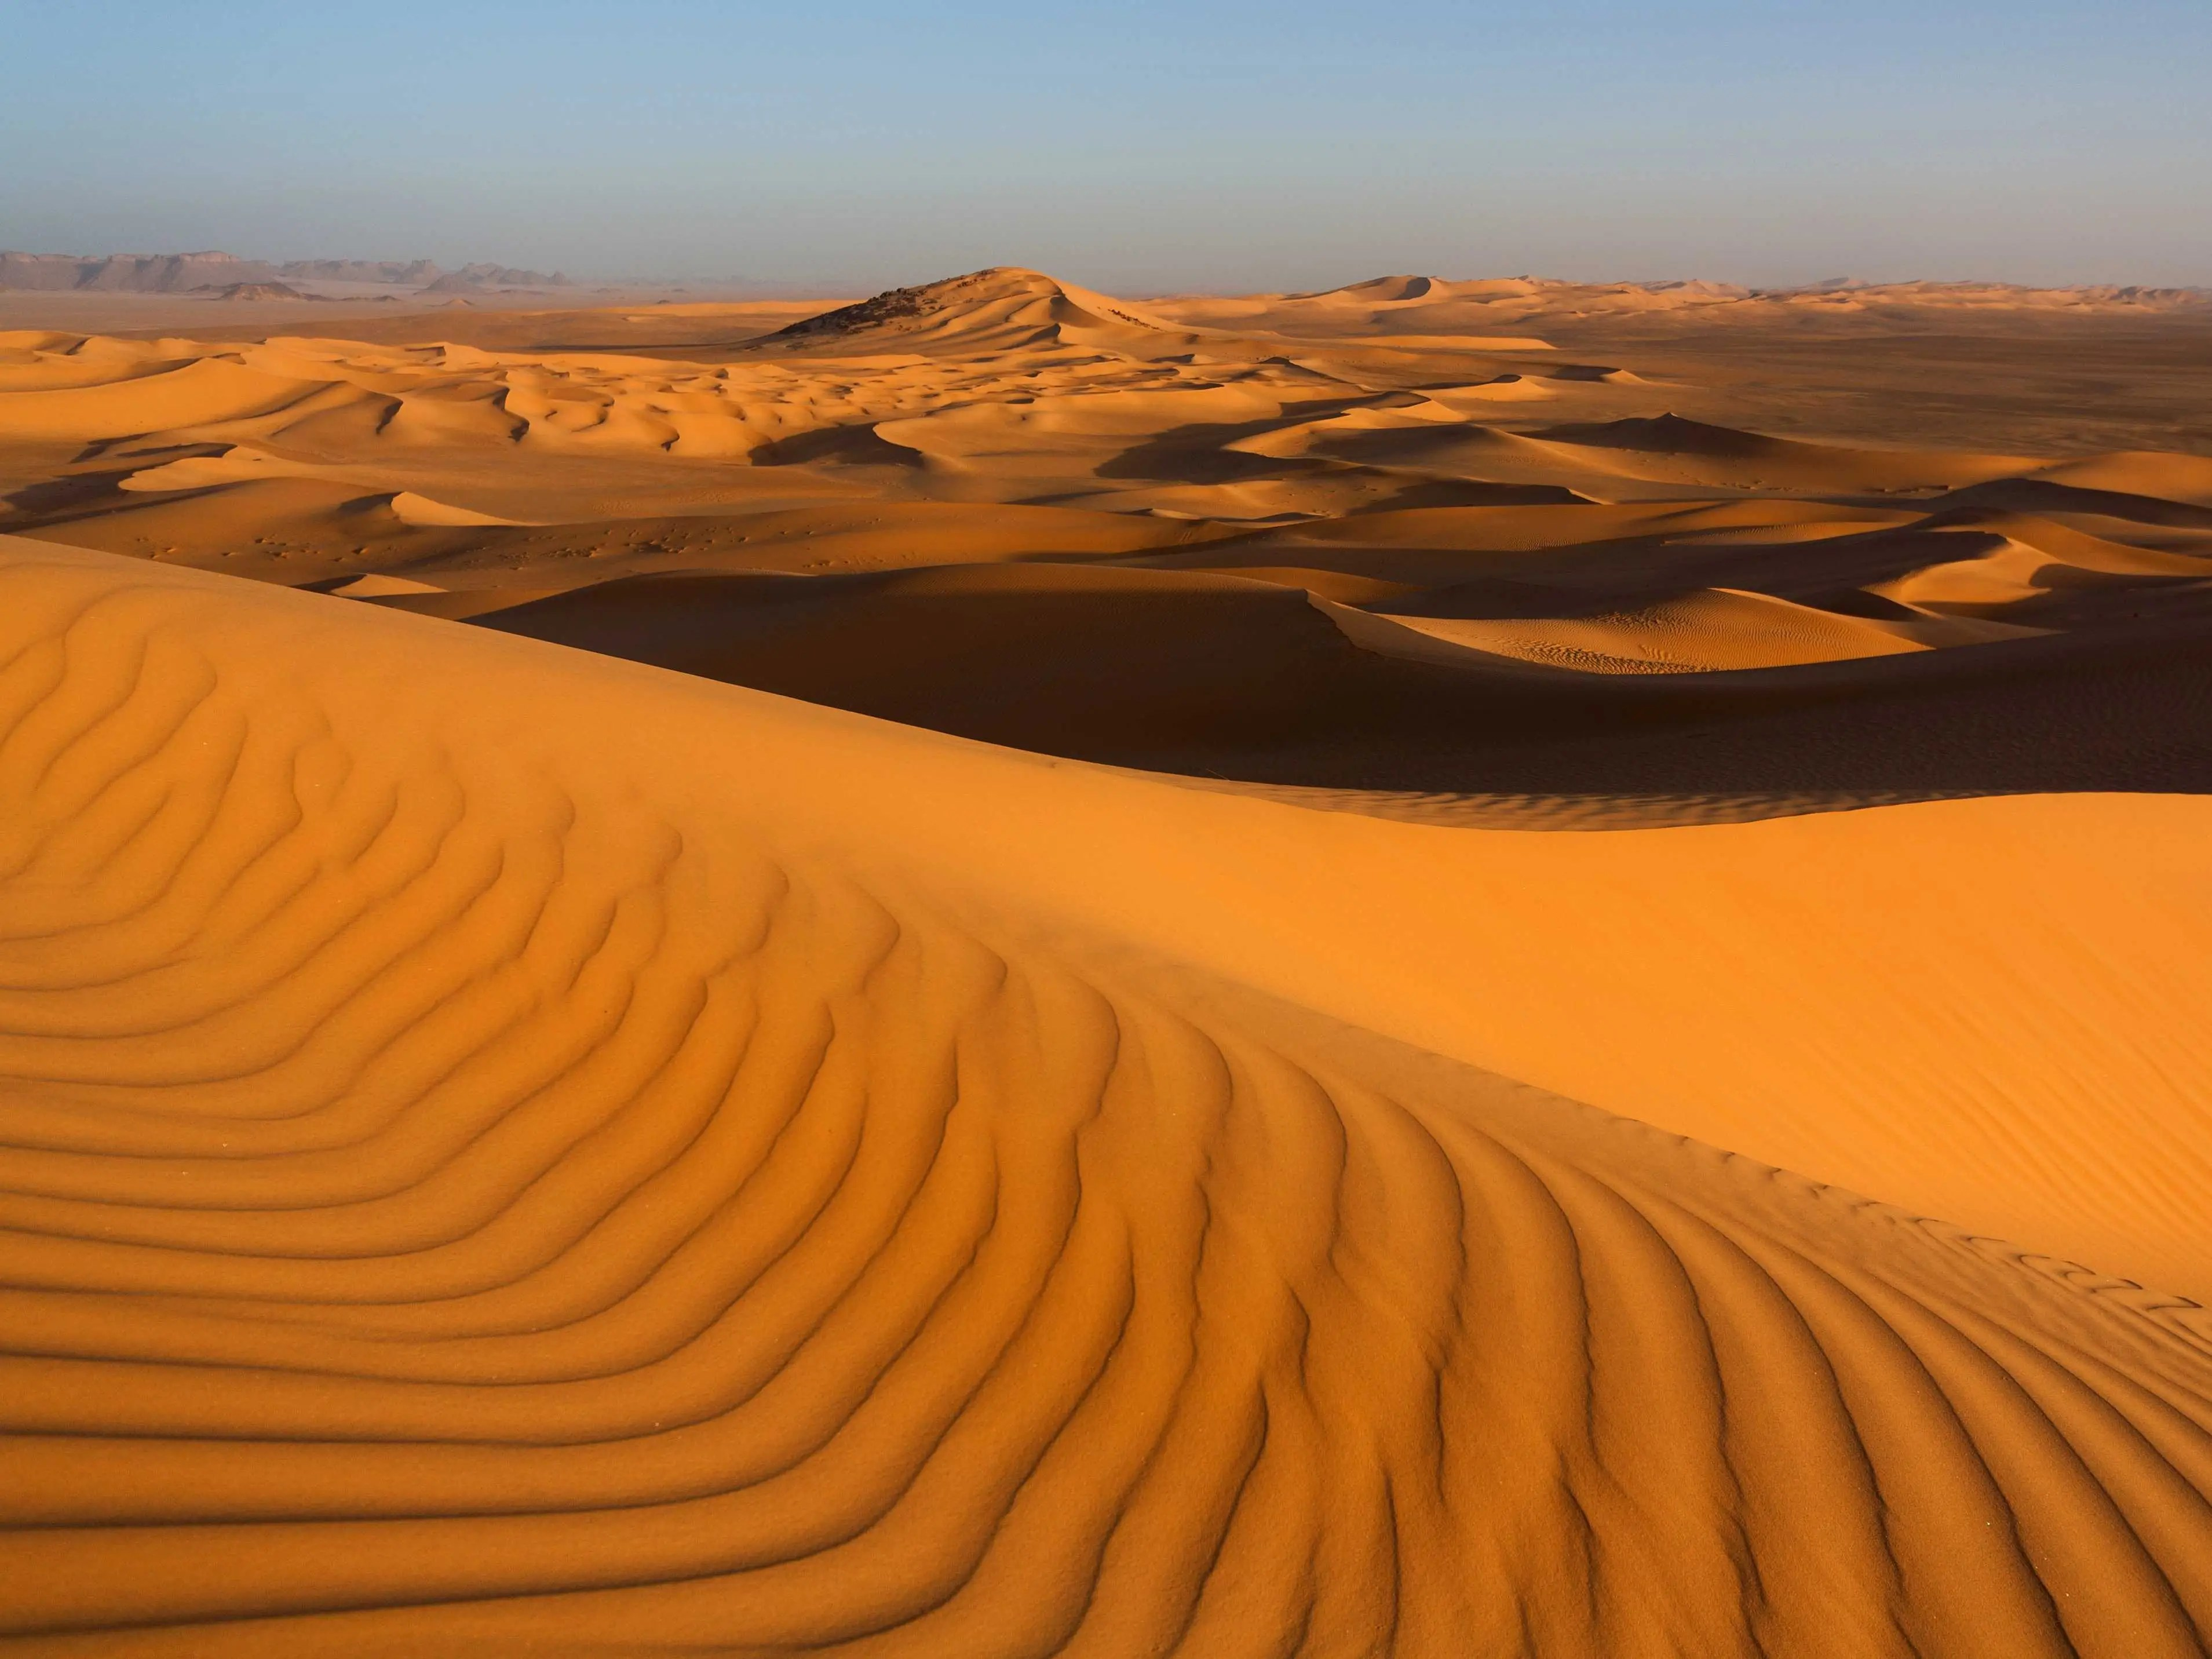 Explore the Sahara desert, the largest desert on the African continent.